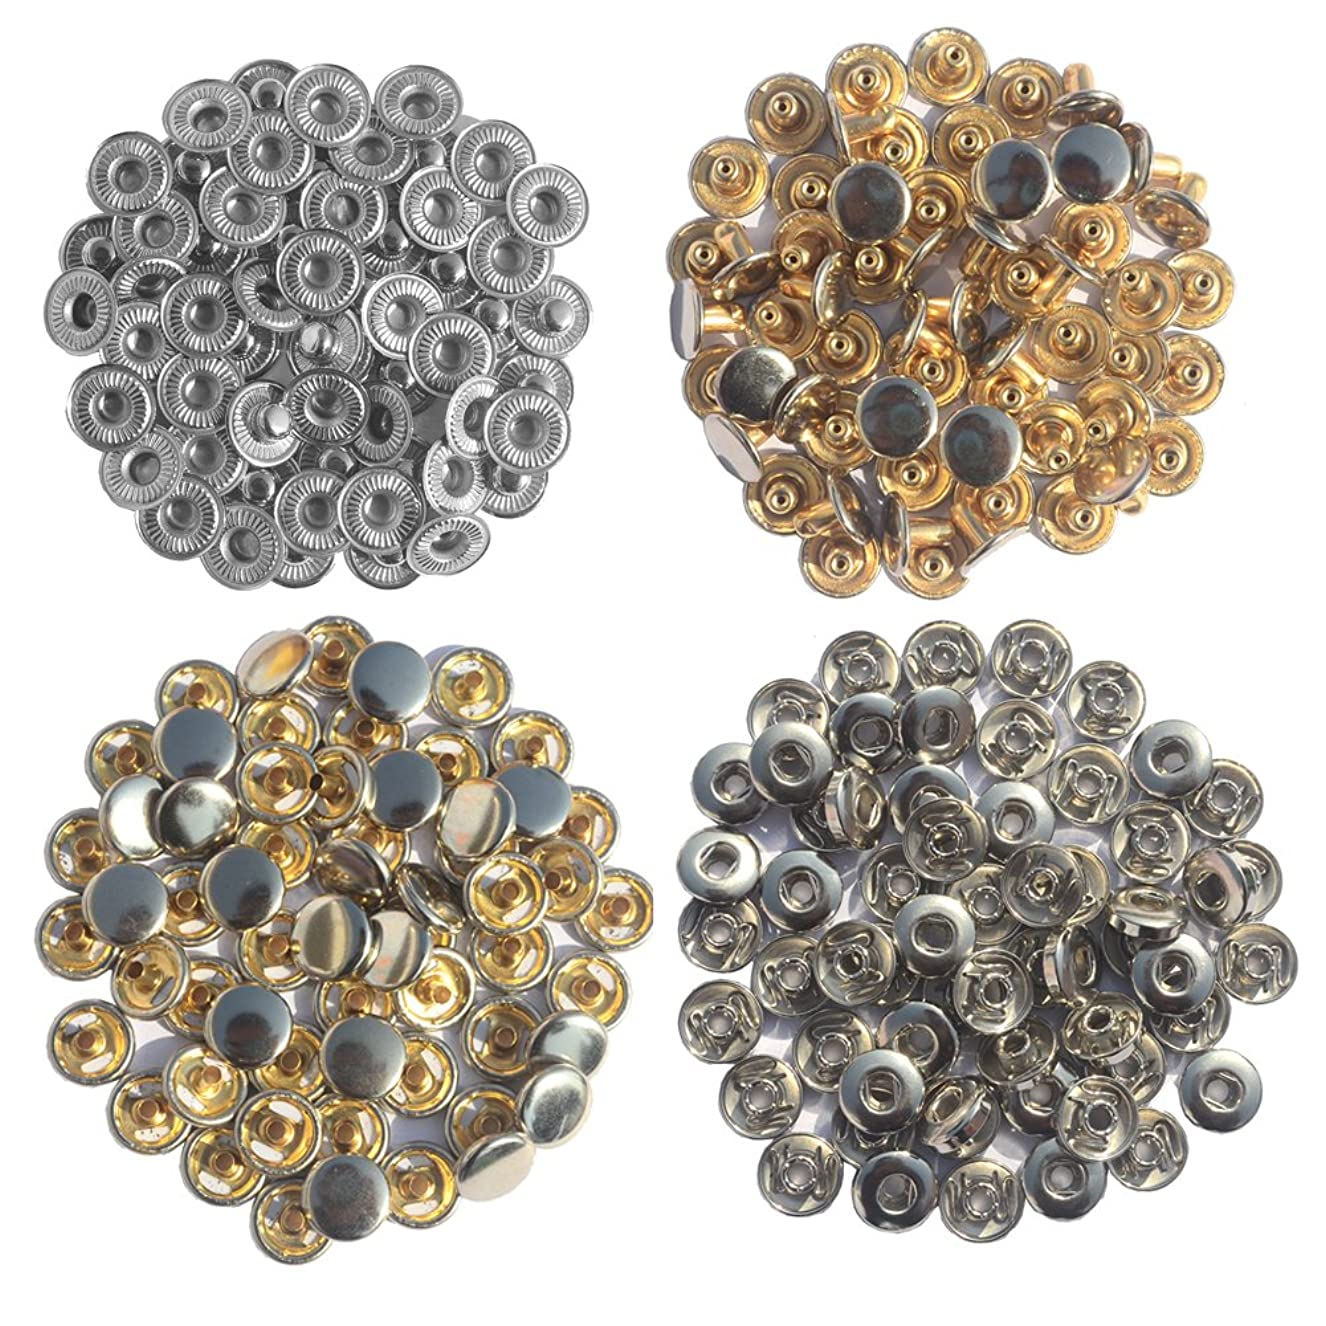 DGOL 60 Sets Press Fasteners Copper Poppers Coat Clothes Leather Studs 633 Rivets Snaps Button (Silver) bclhdjdlck6362